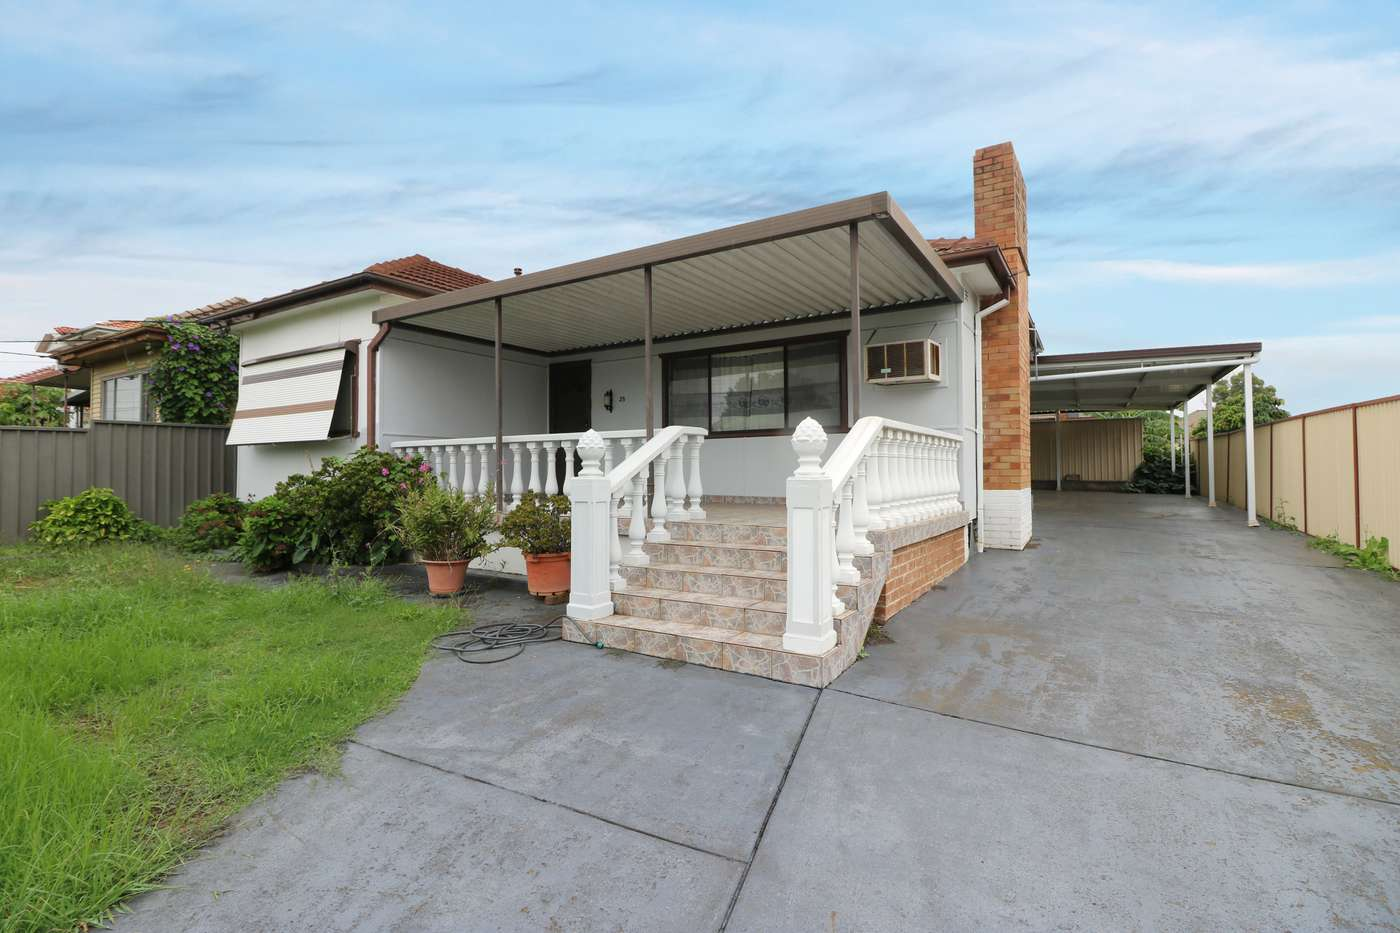 Main view of Homely property listing, 23 Derby Street, Canley Heights, NSW 2166